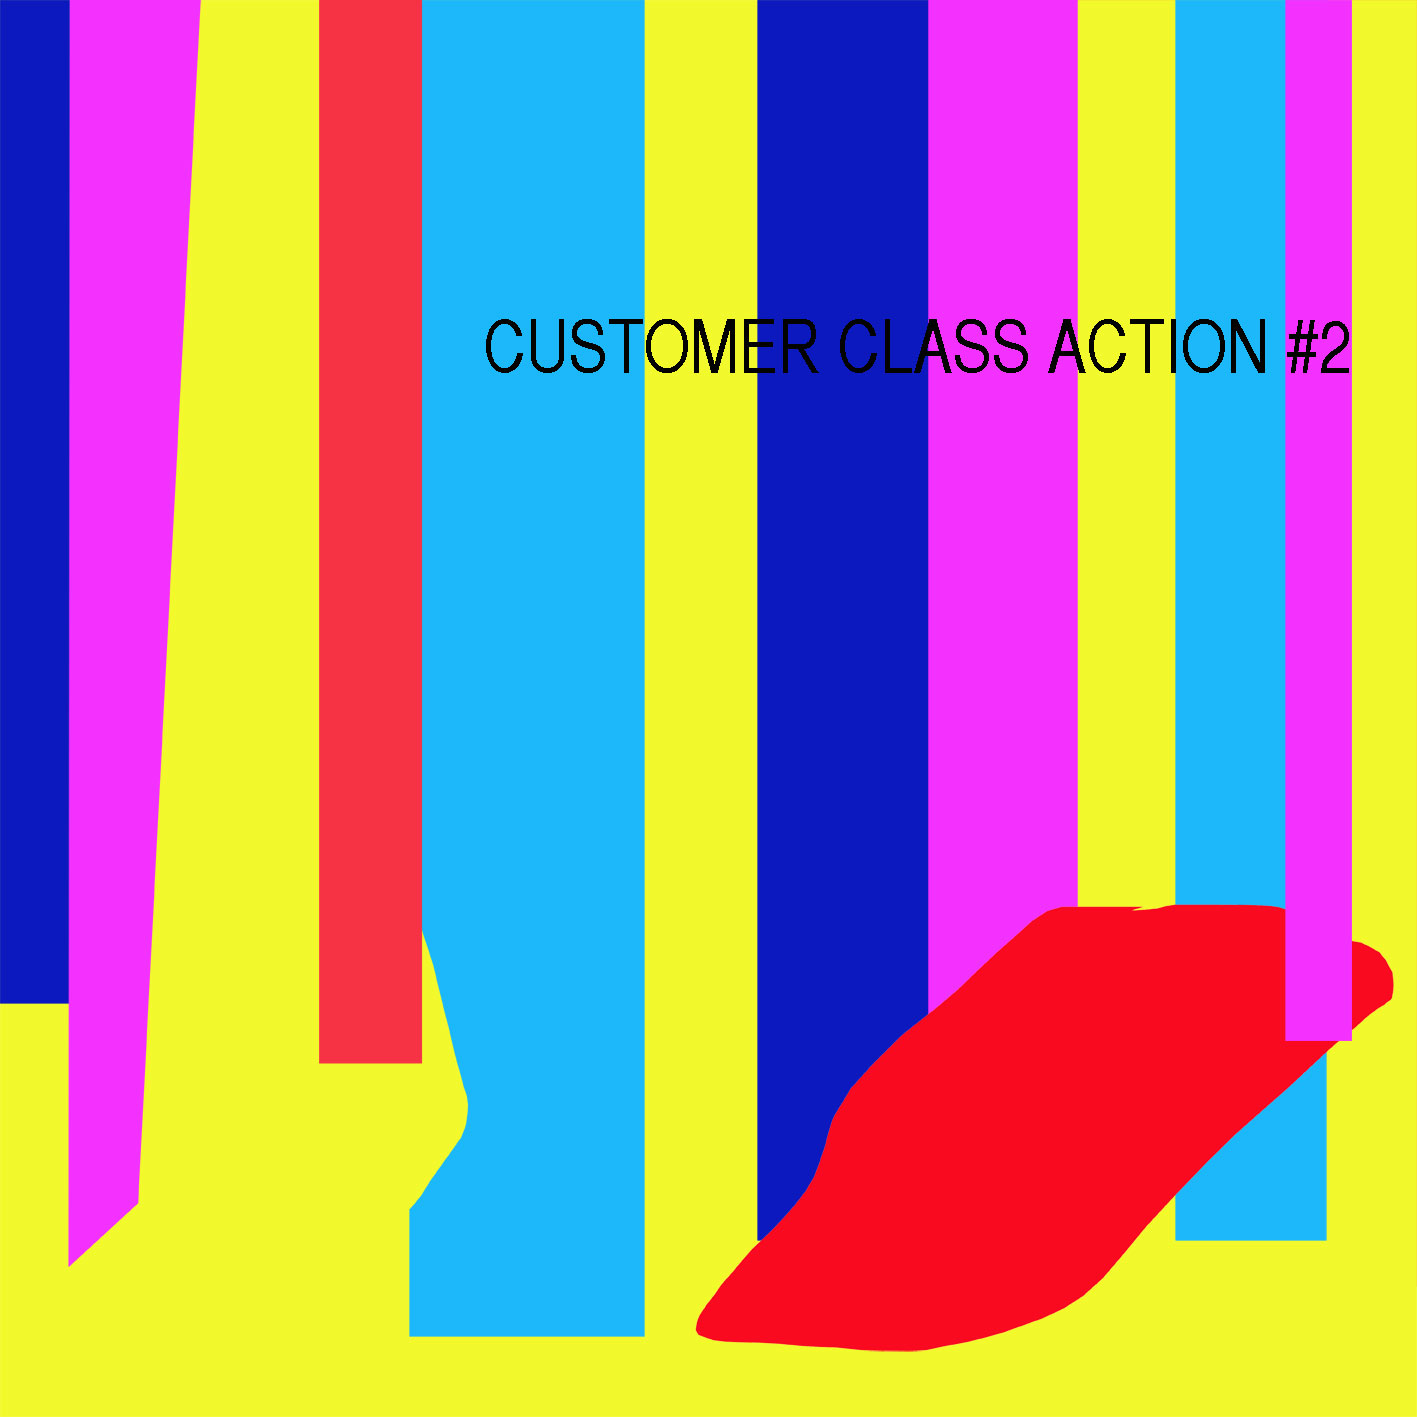 CUSTOMER CLASS ACTION 2